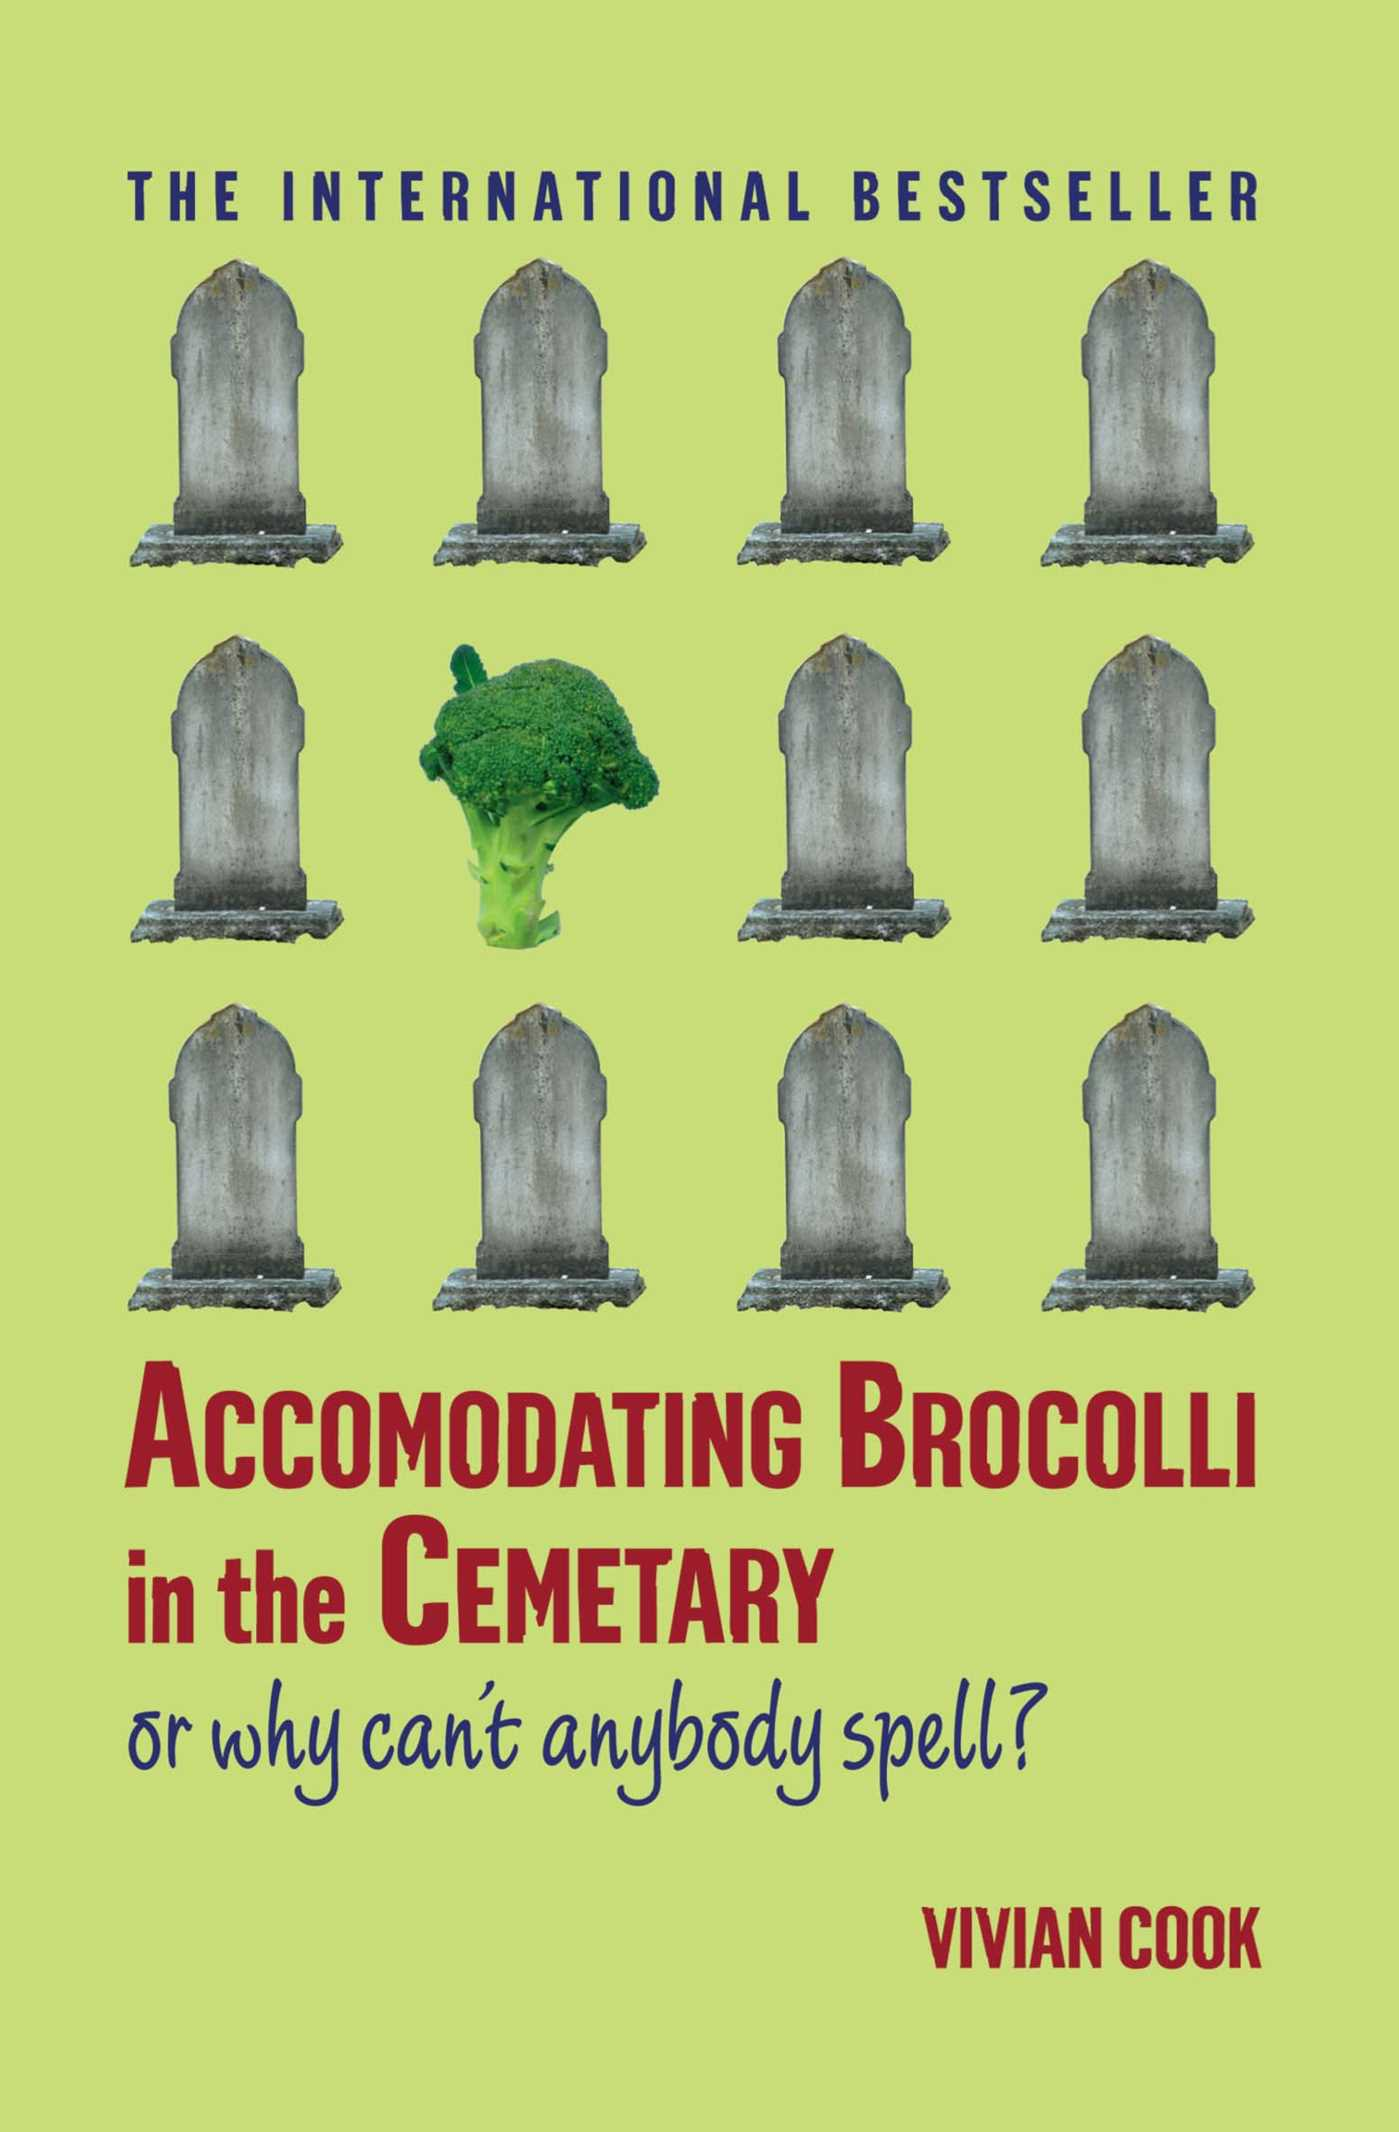 Accomodating-brocolli-in-the-cemetary-9780743297110_hr